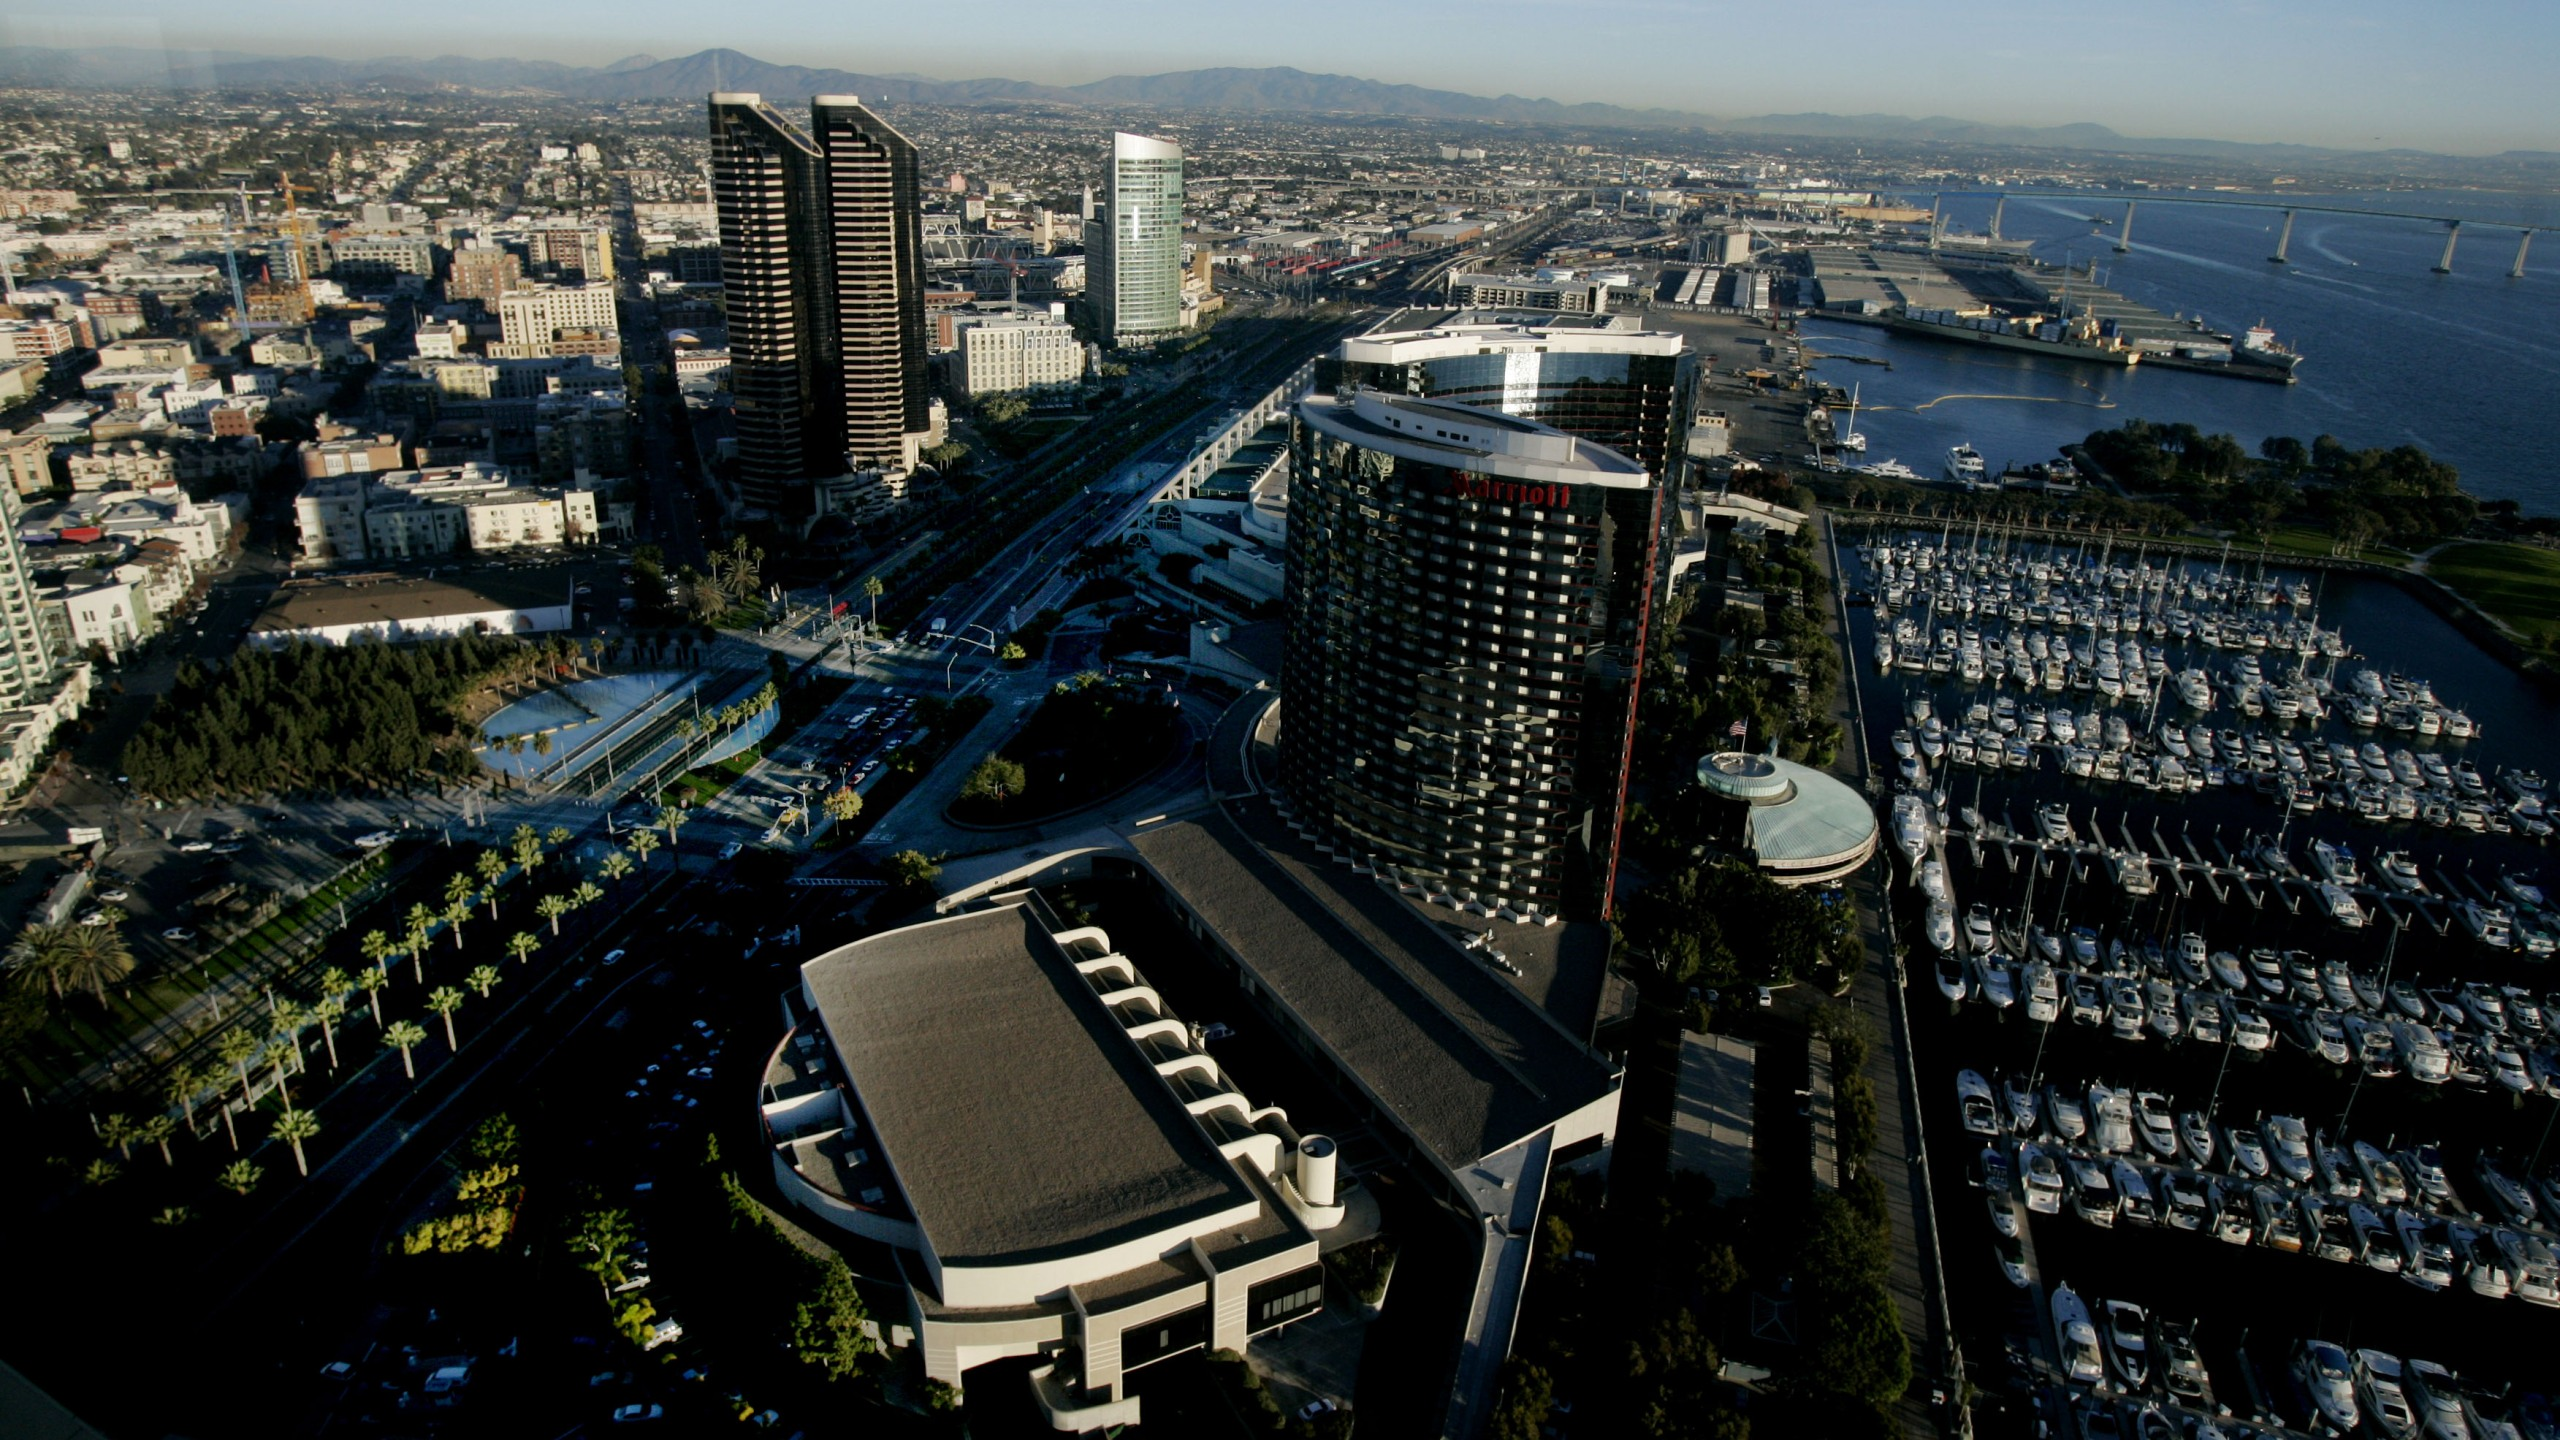 Downtown San Diego is seen in a photo from Dec. 6, 2005. (Sandy Huffaker/Getty Images)